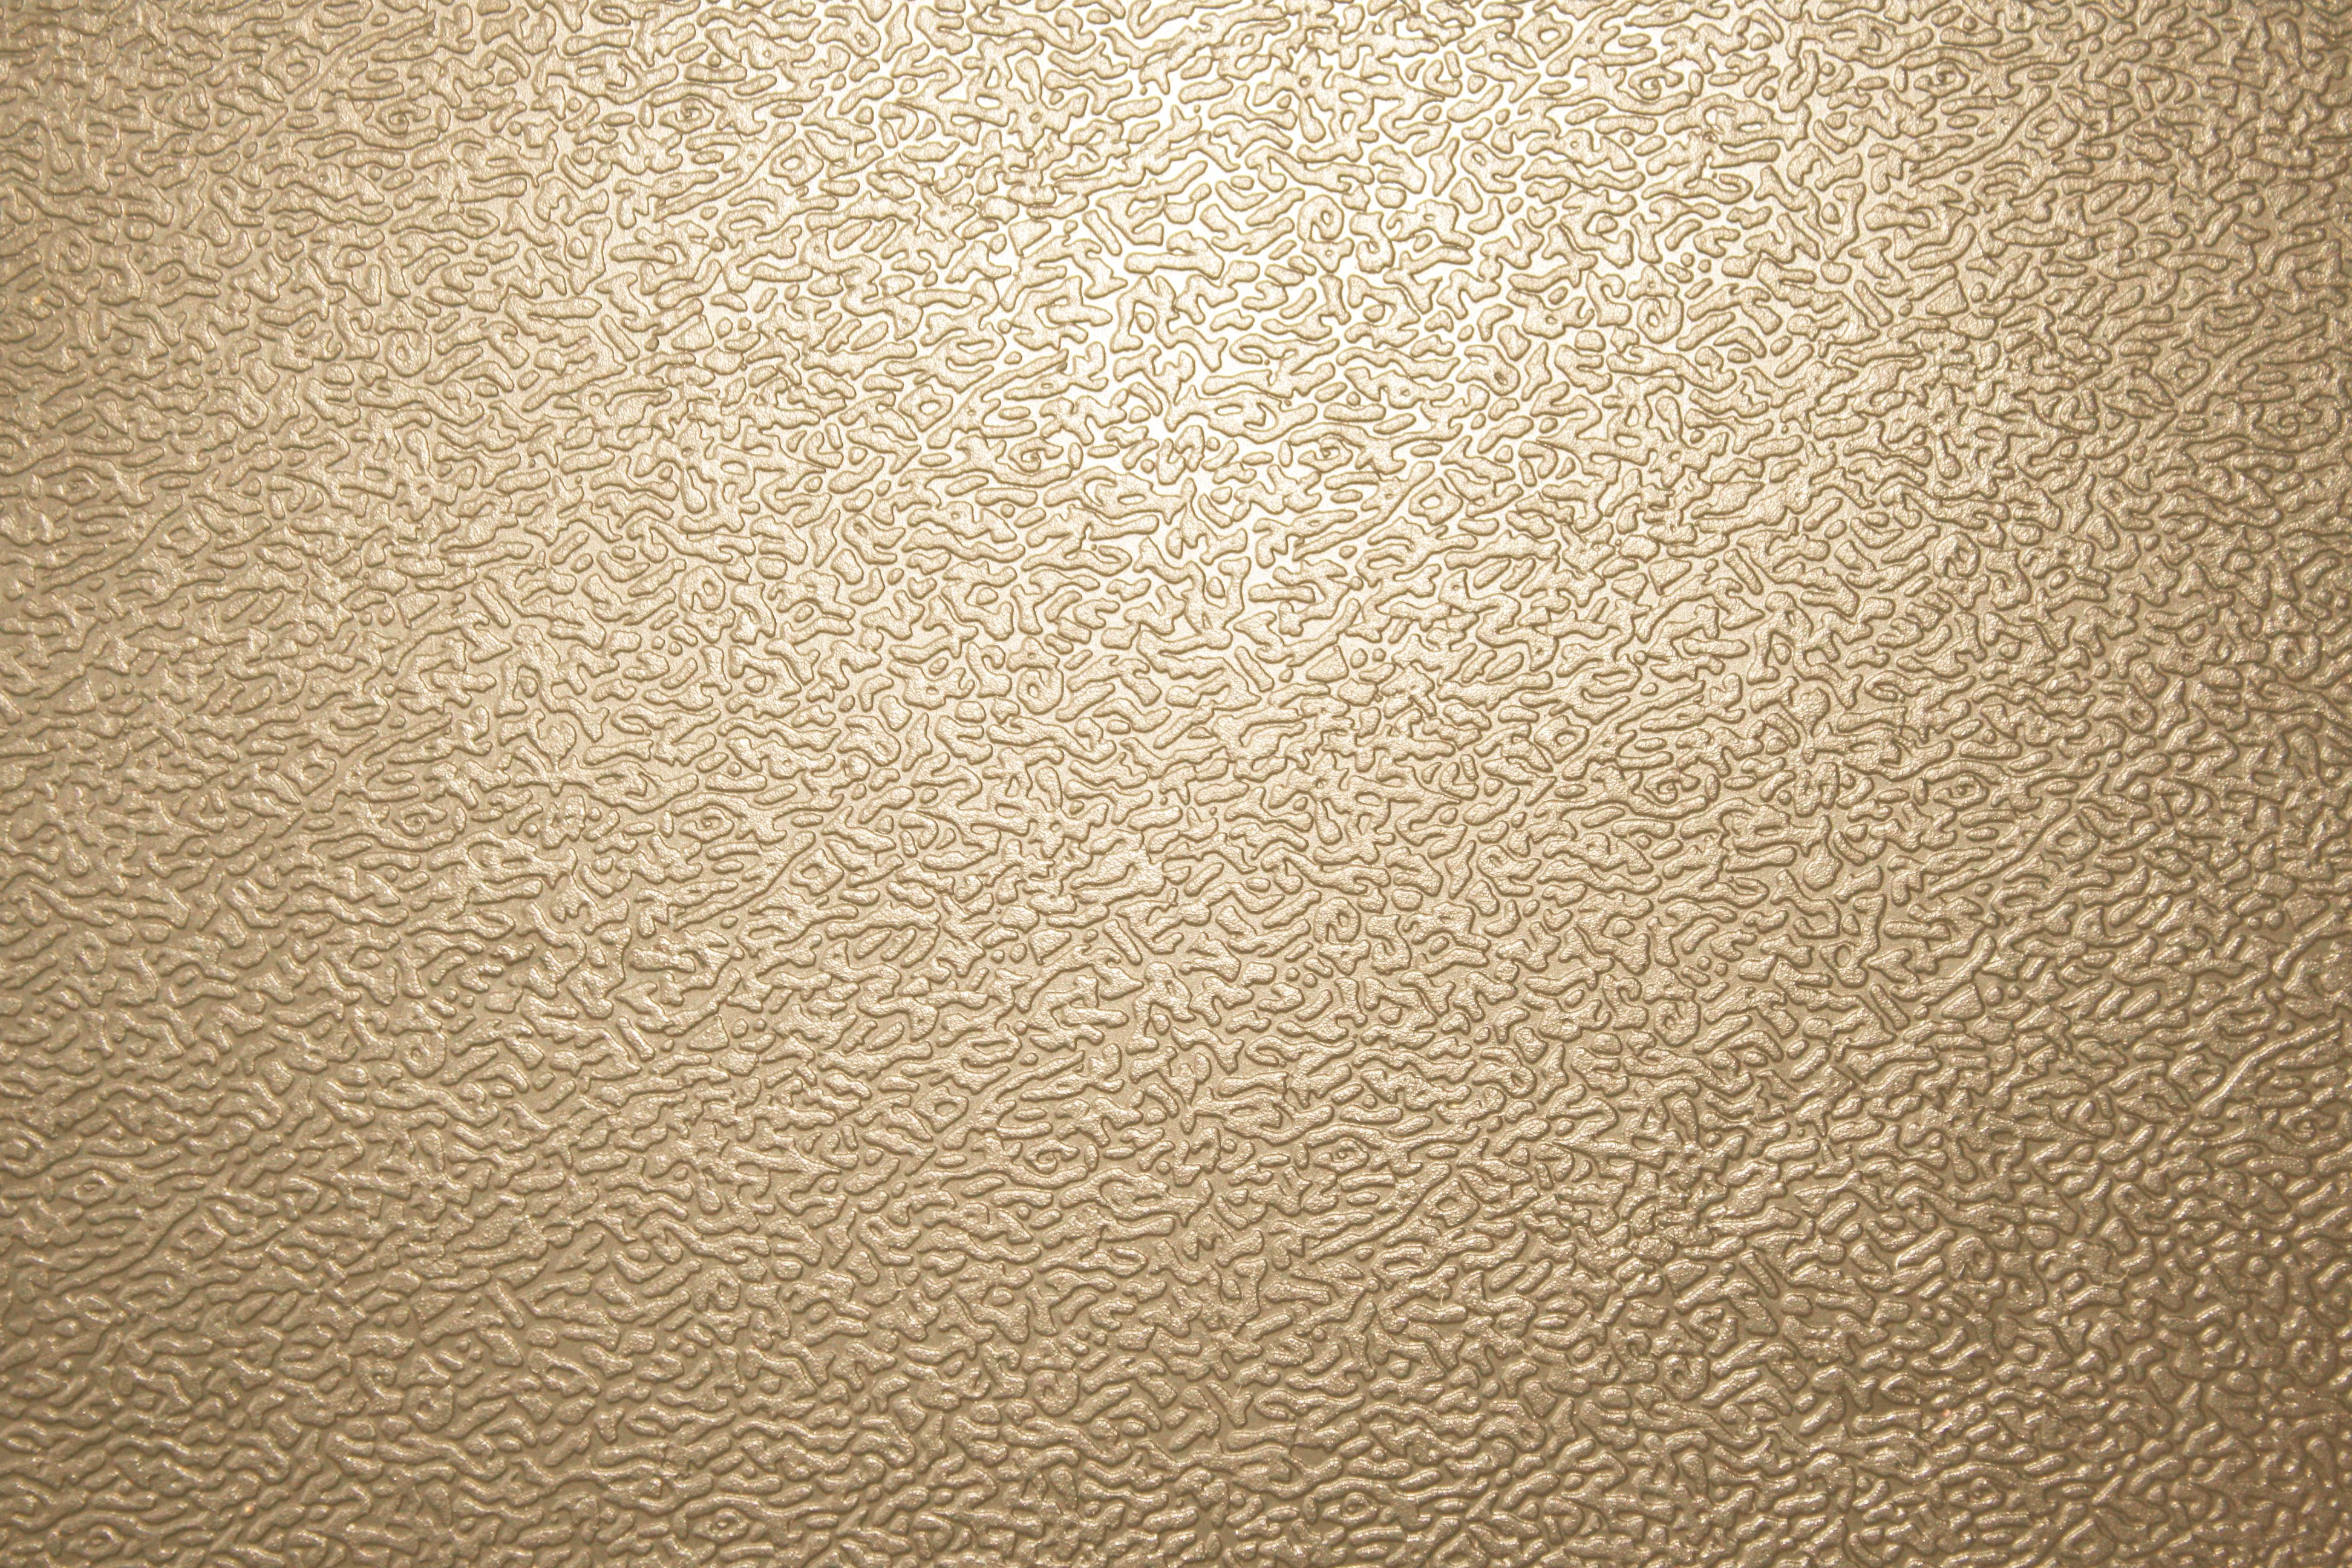 Textured Tan Plastic Close Up Picture Free Photograph